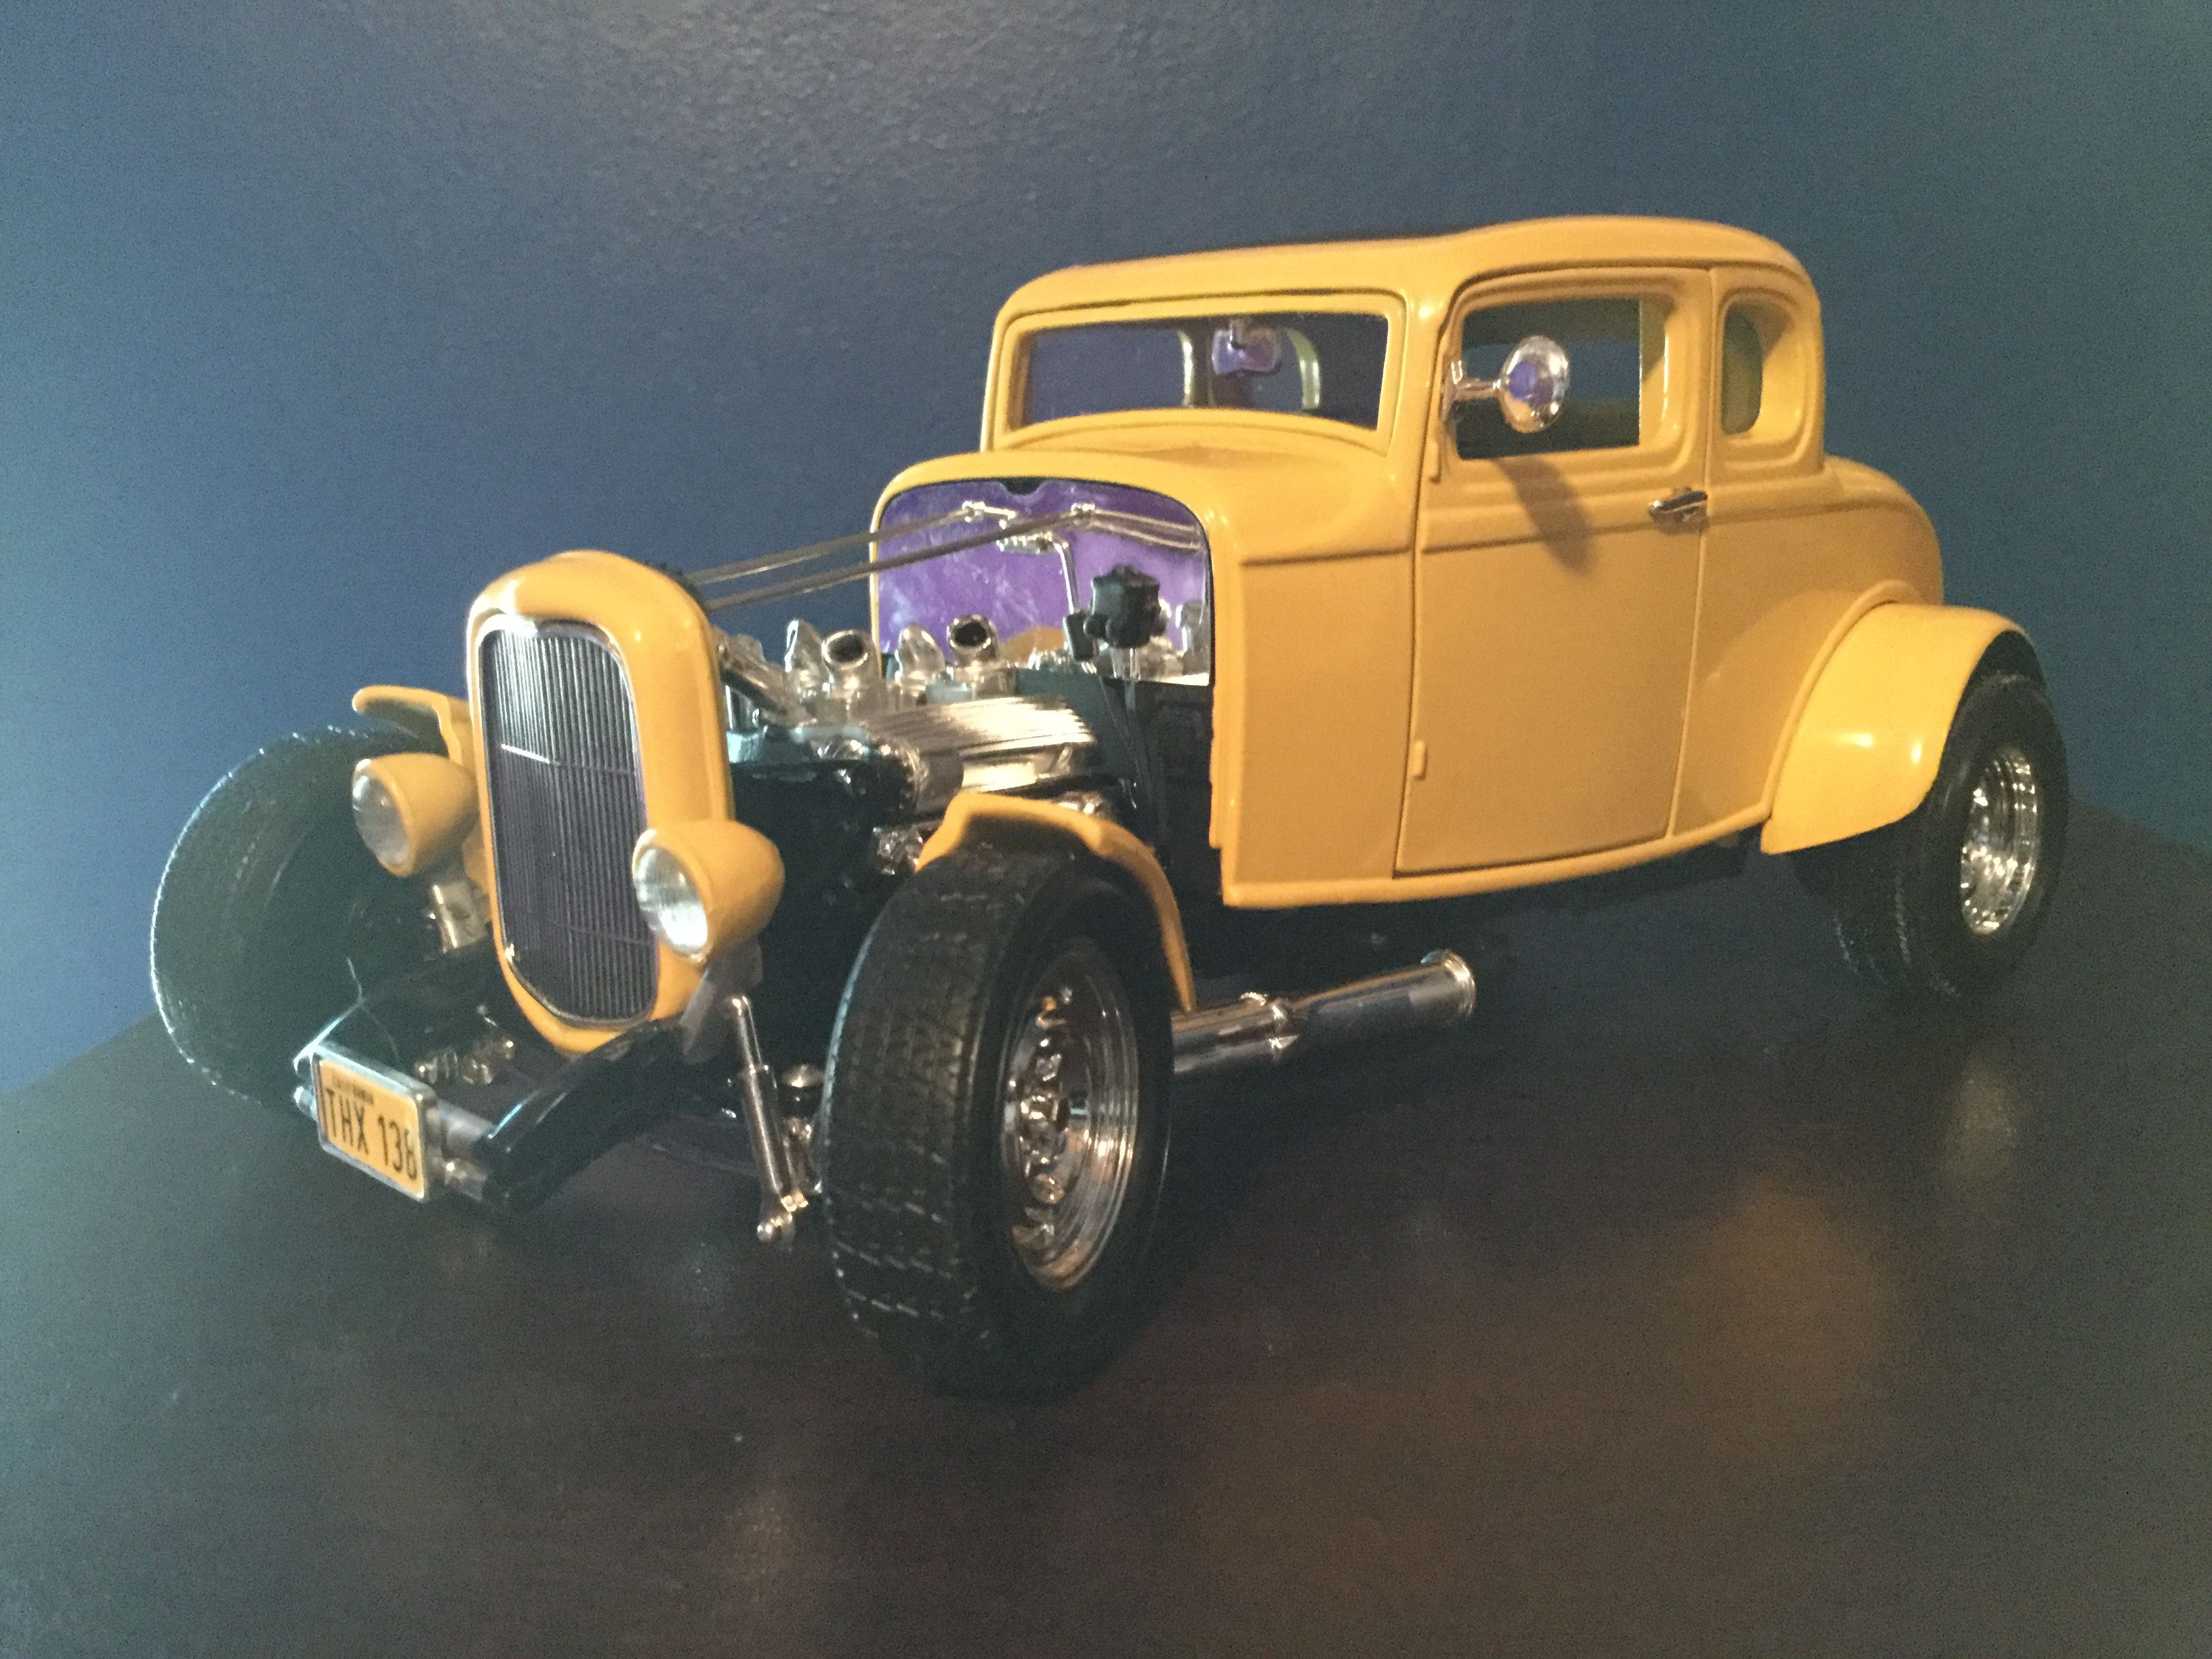 American Graffiti The Yellow Deuce With Images American